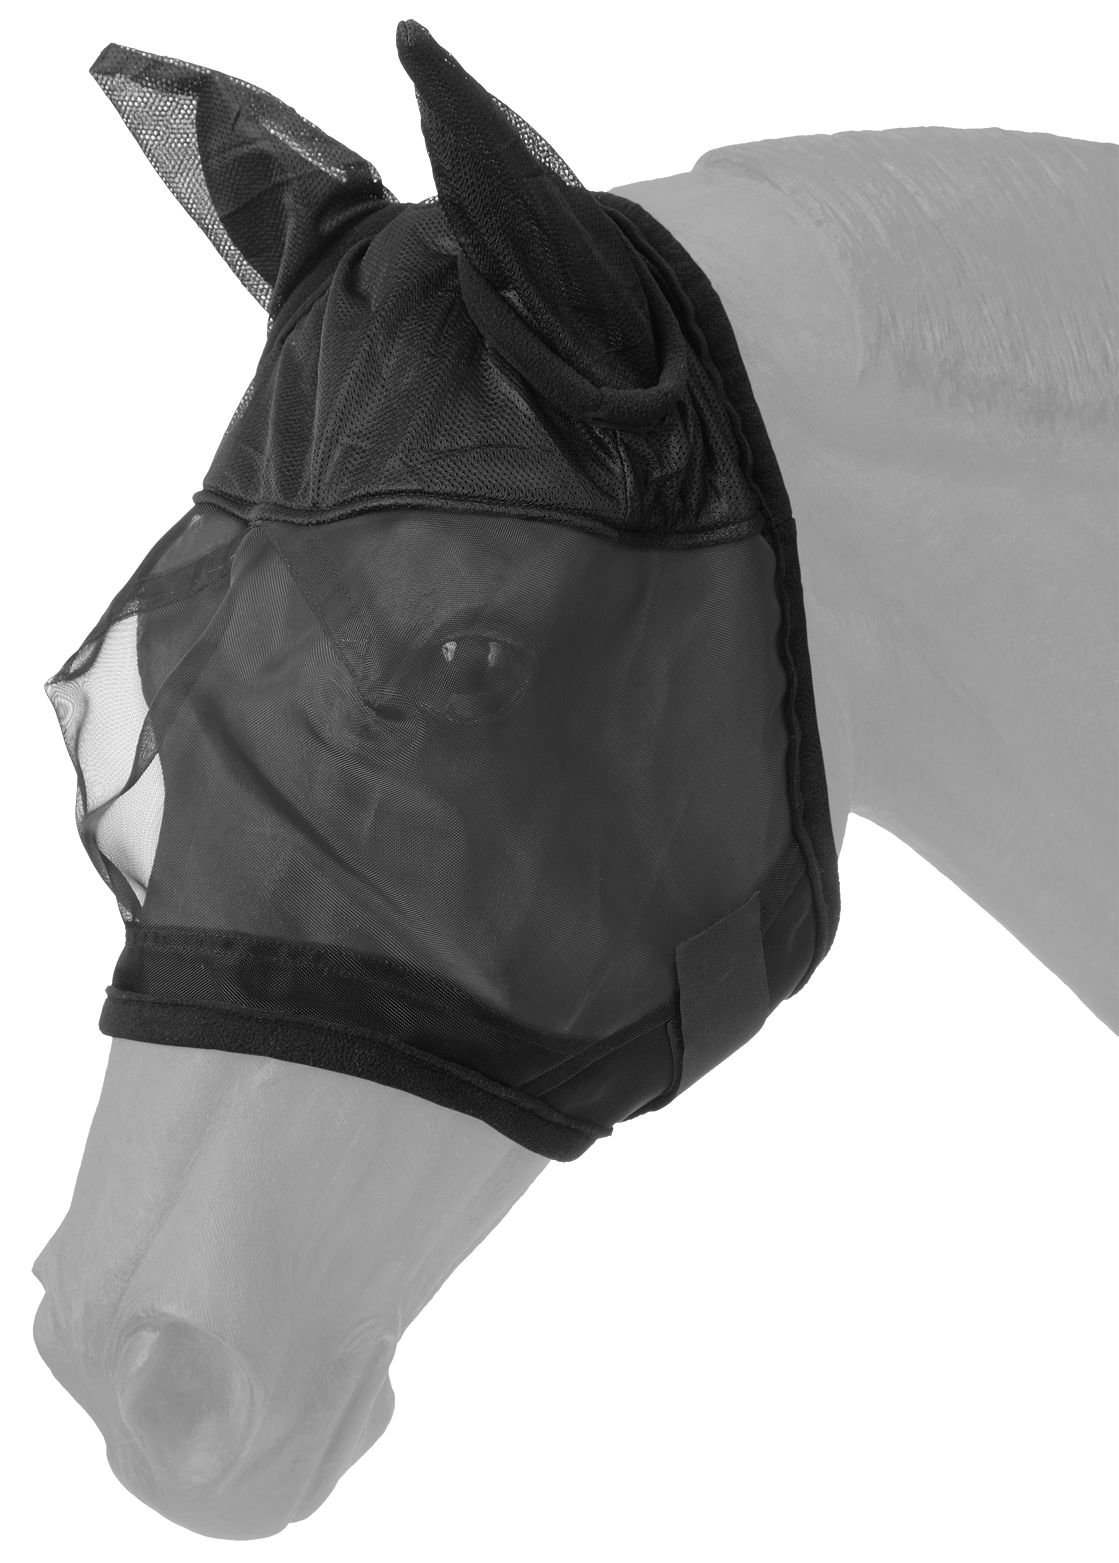 Tough 1 Fly Mask with Ears, Black, Horse Size by Tough 1